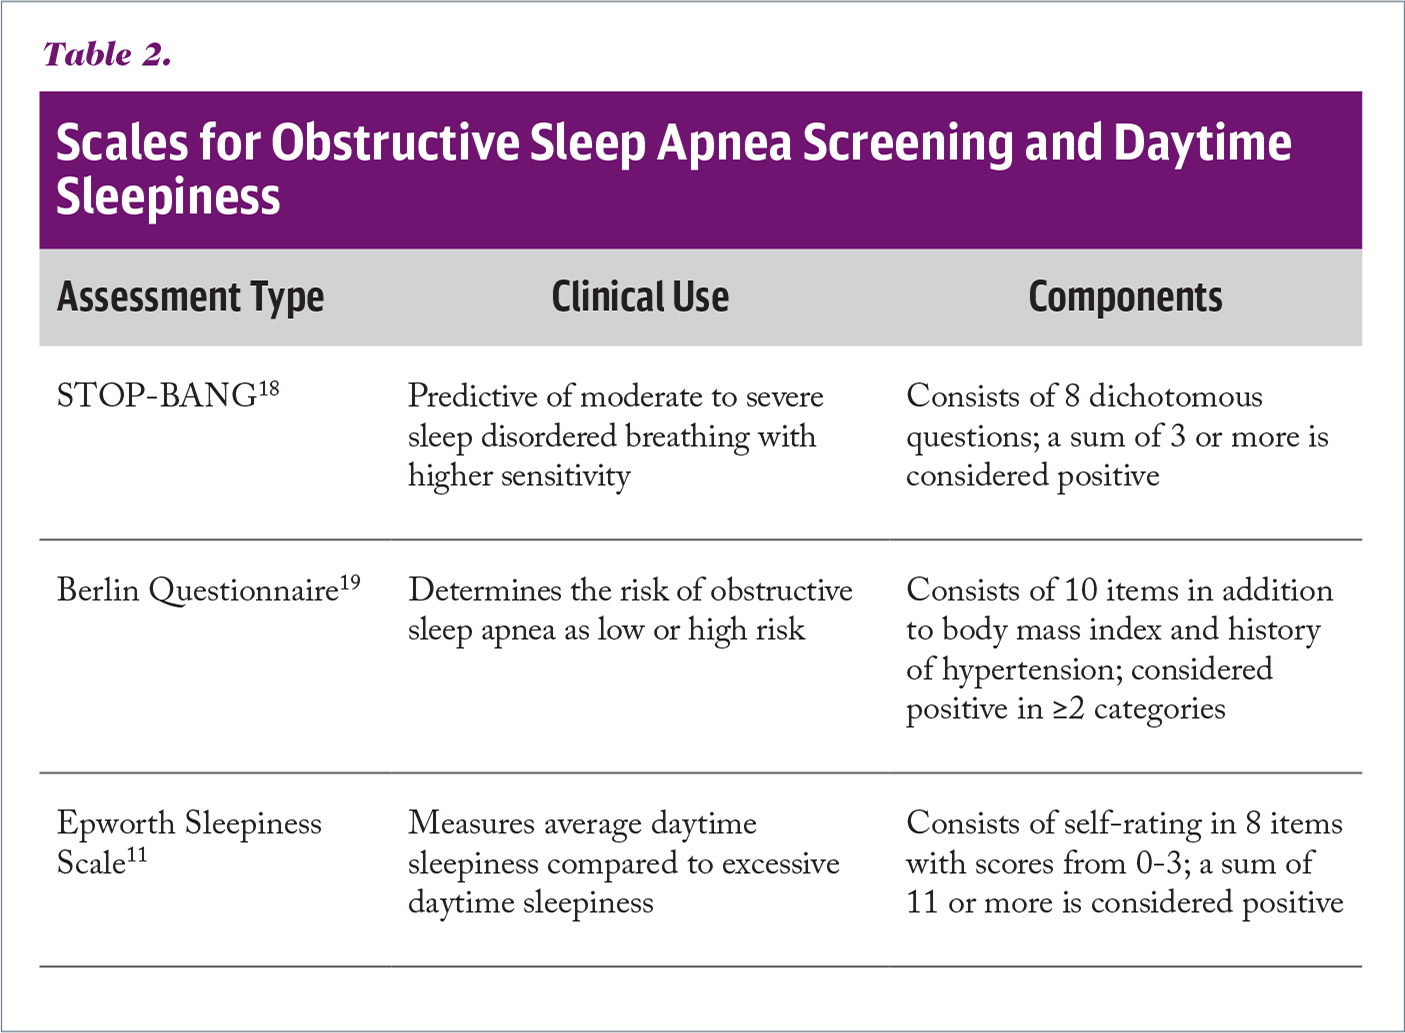 Scales for Obstructive Sleep Apnea Screening and Daytime Sleepiness